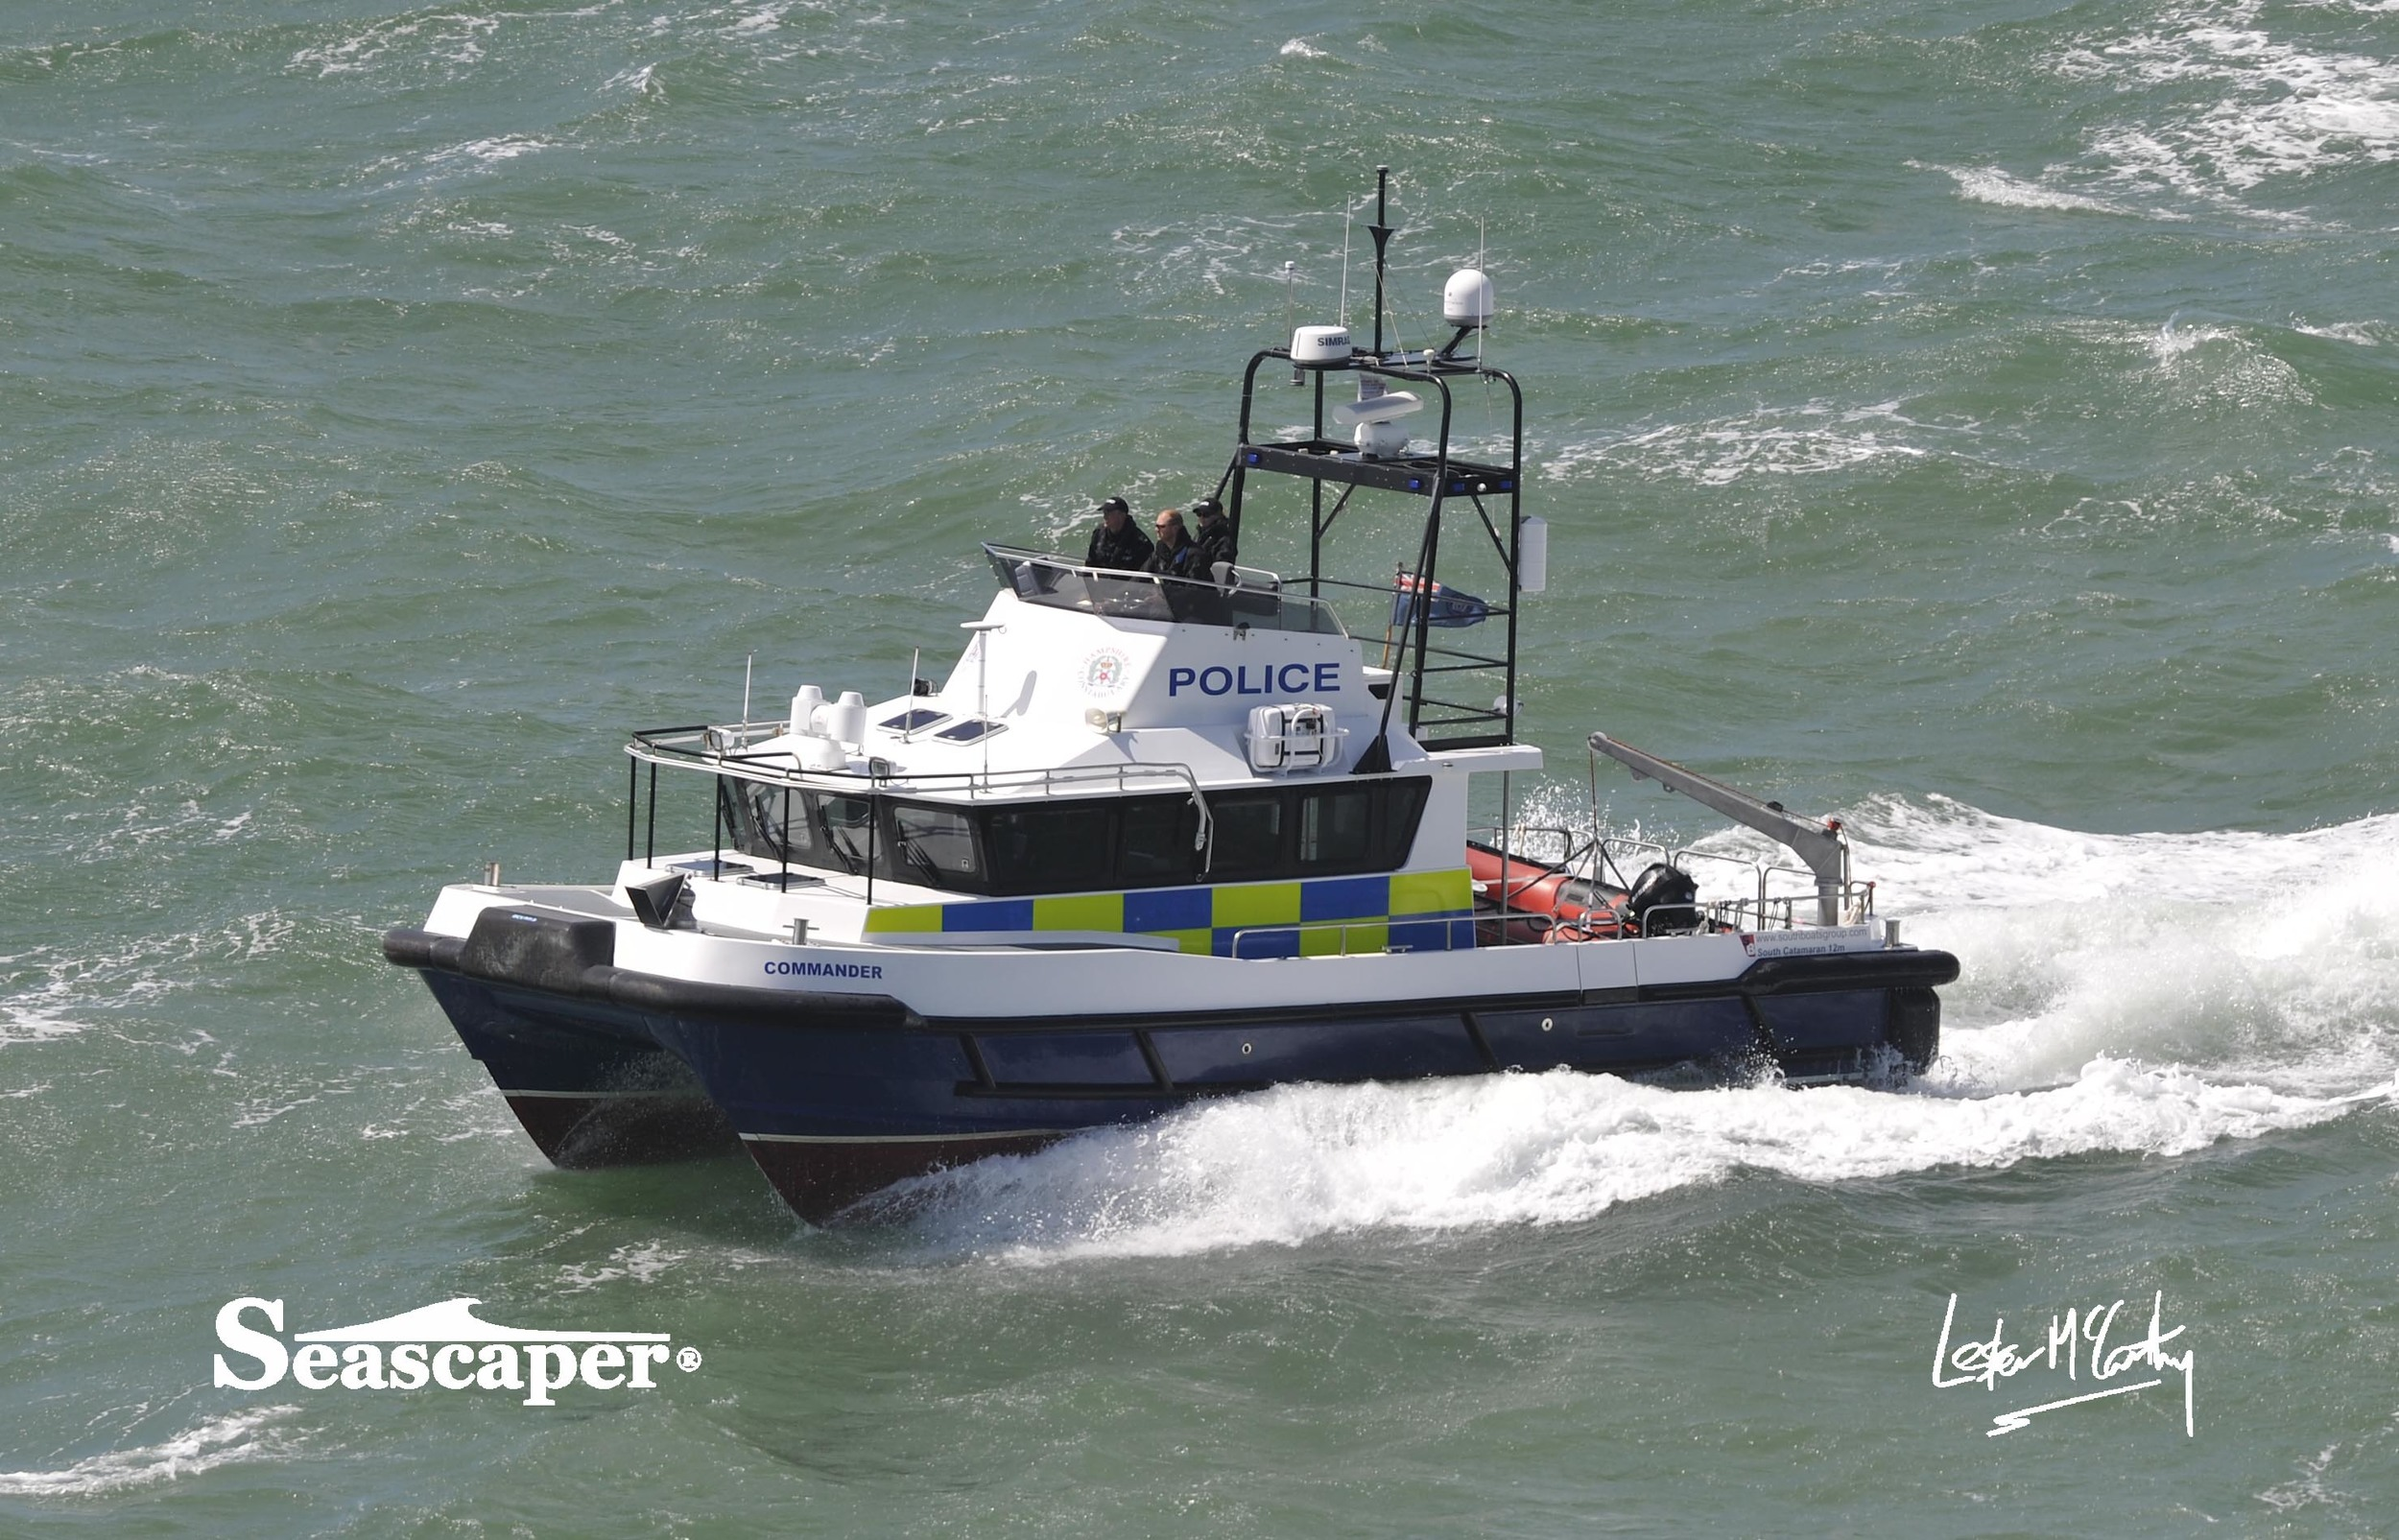 Police launch -  Commander  was the first rescue vessel on the scene.